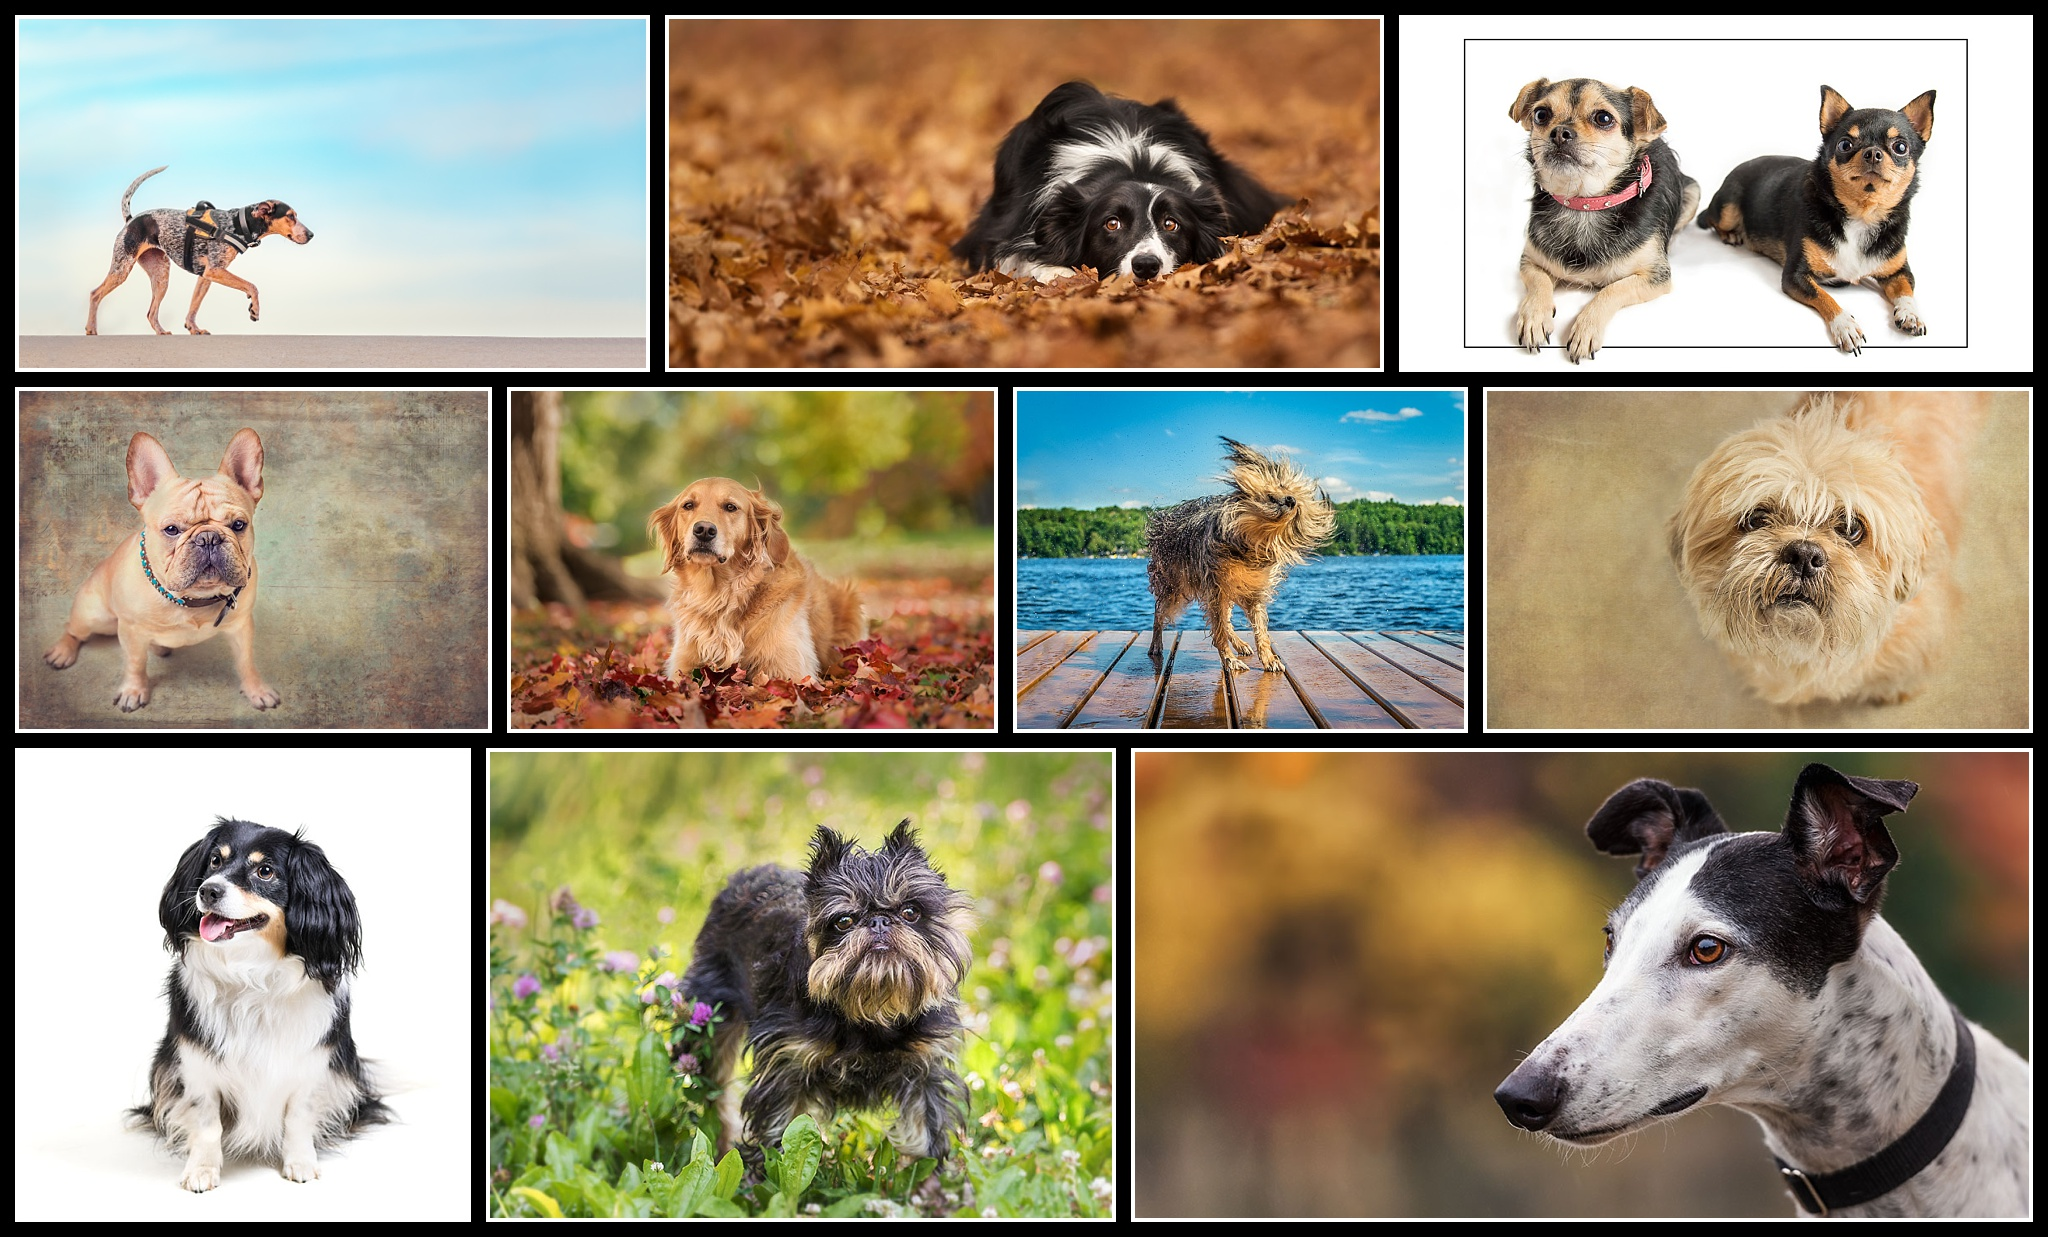 Canine Portraiture 2017 - The 10 Accepted images in my Canine Portraiture Accreditation.